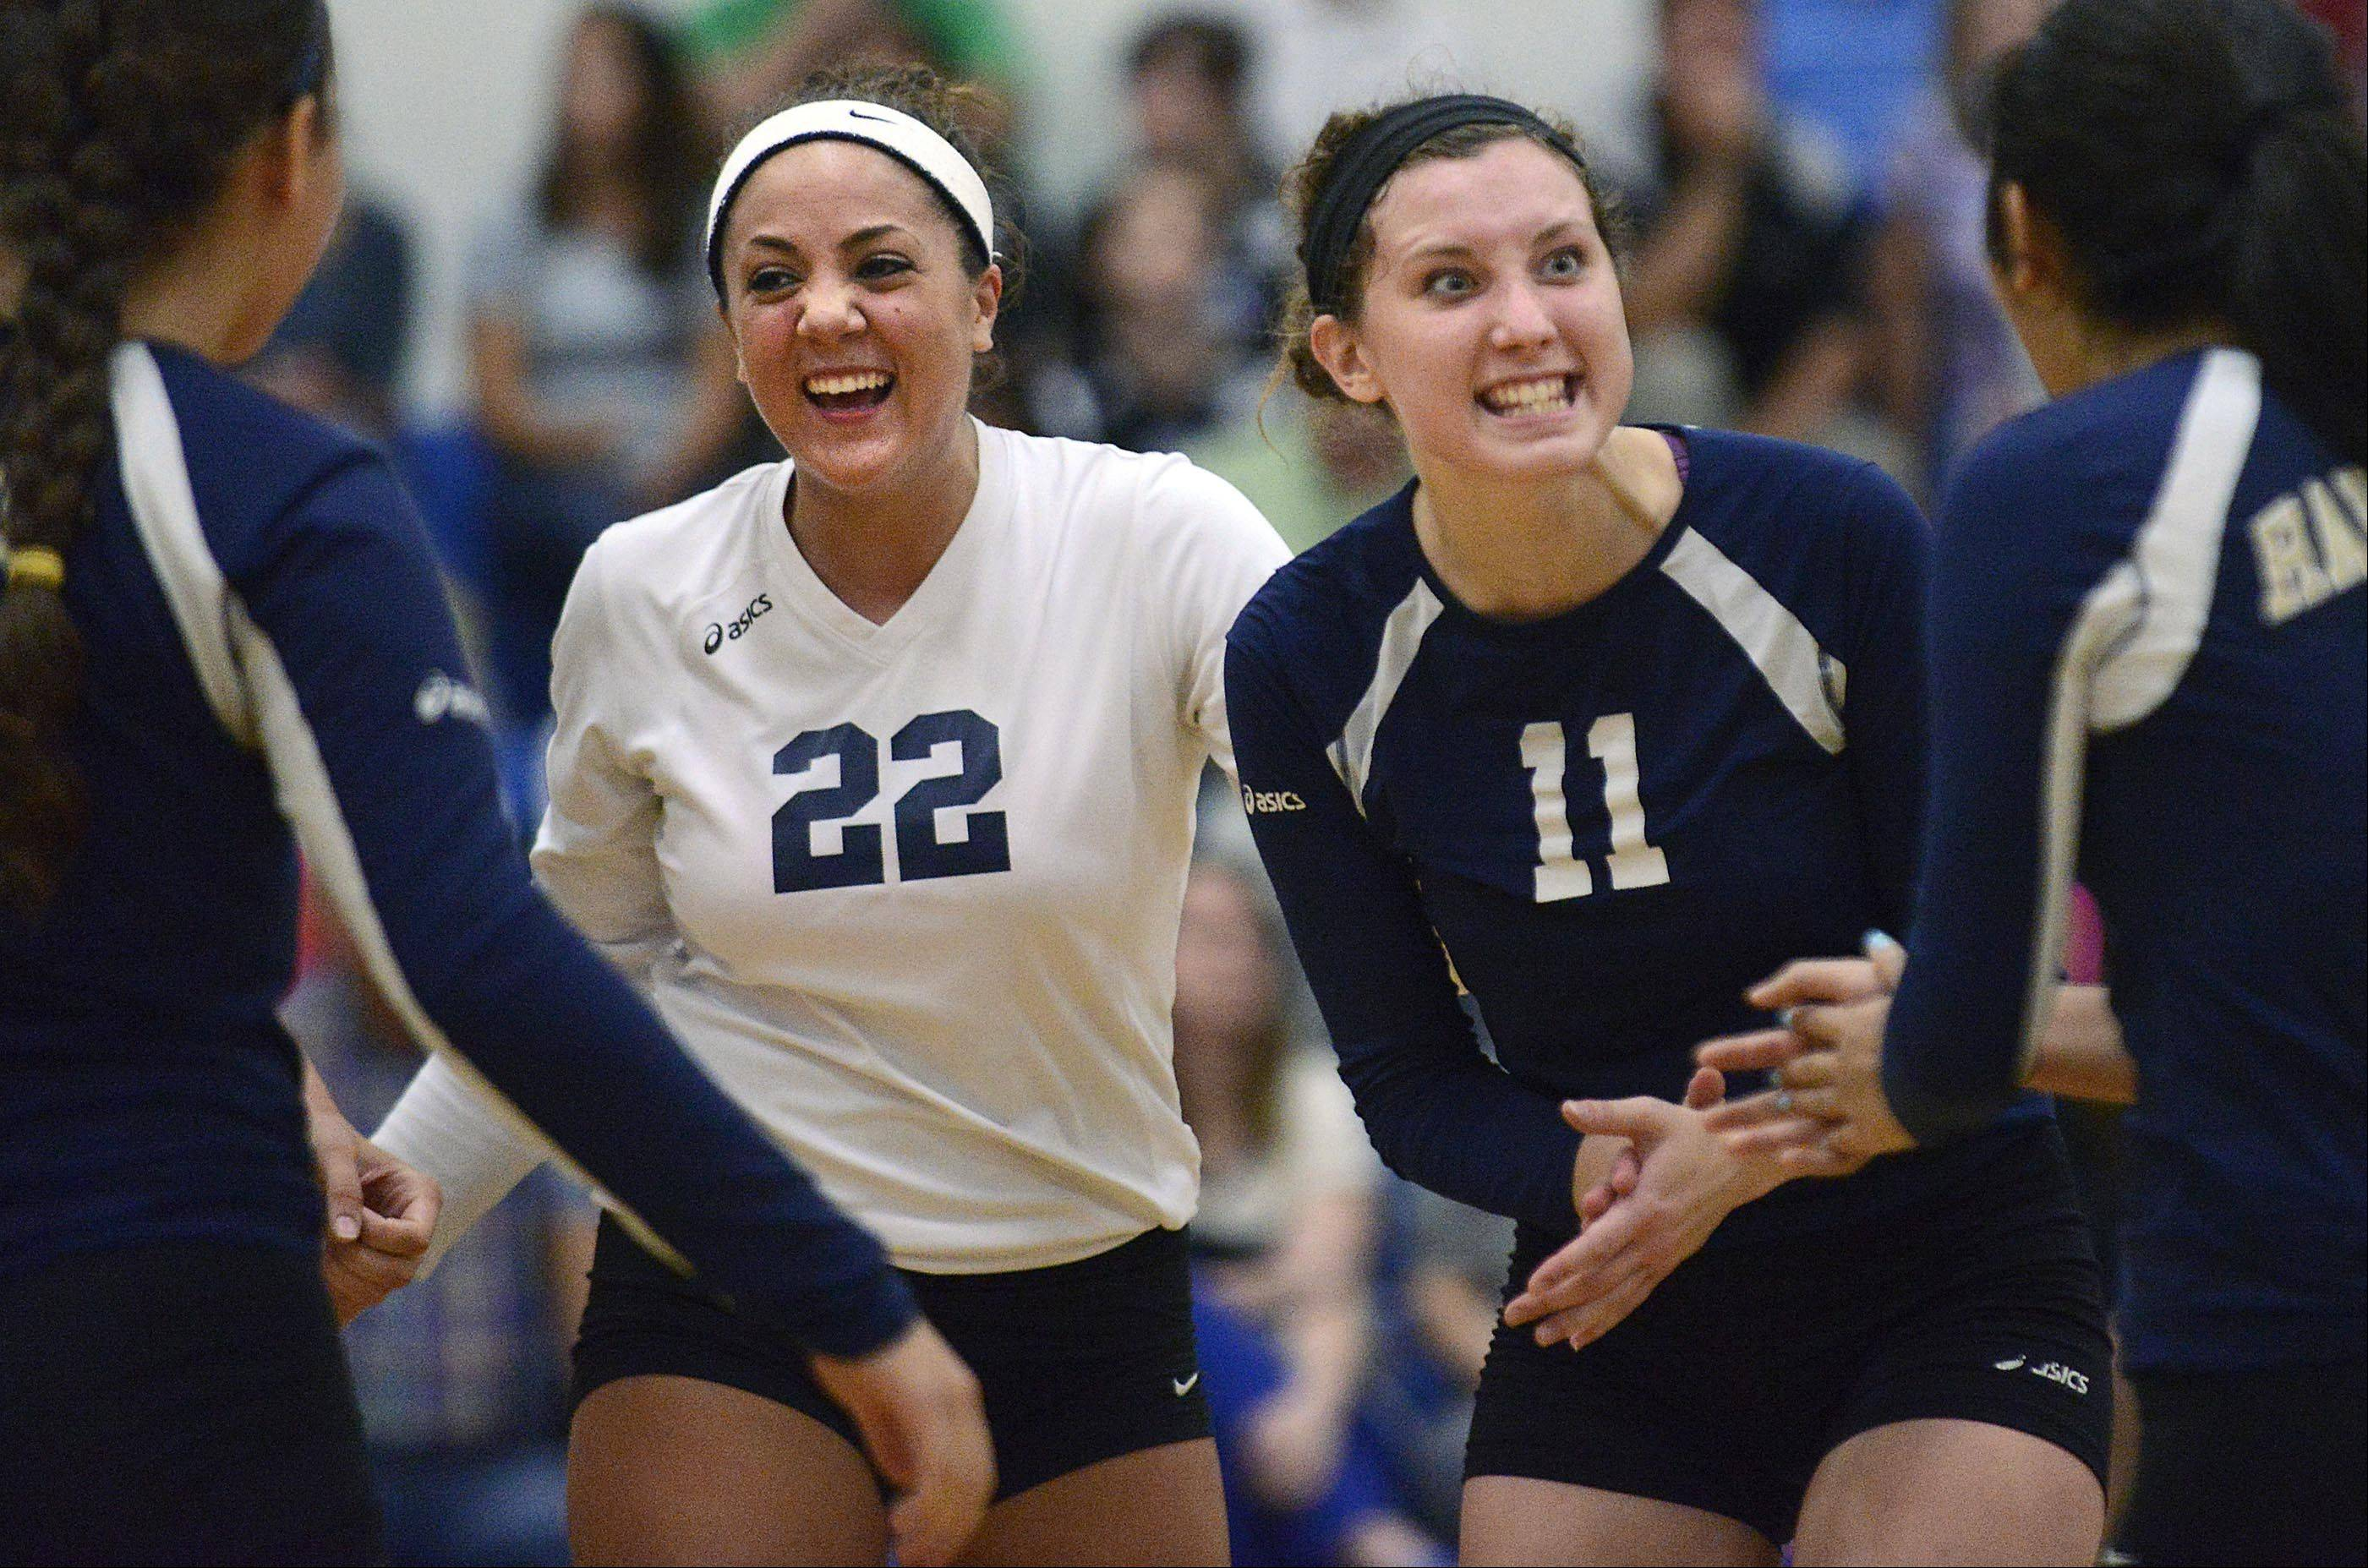 Harvest Christian's Shayna Manusos, left, and Chloe Corbett celebrate a point in their two-game victory over Westminster Christian Thursday in Elgin.